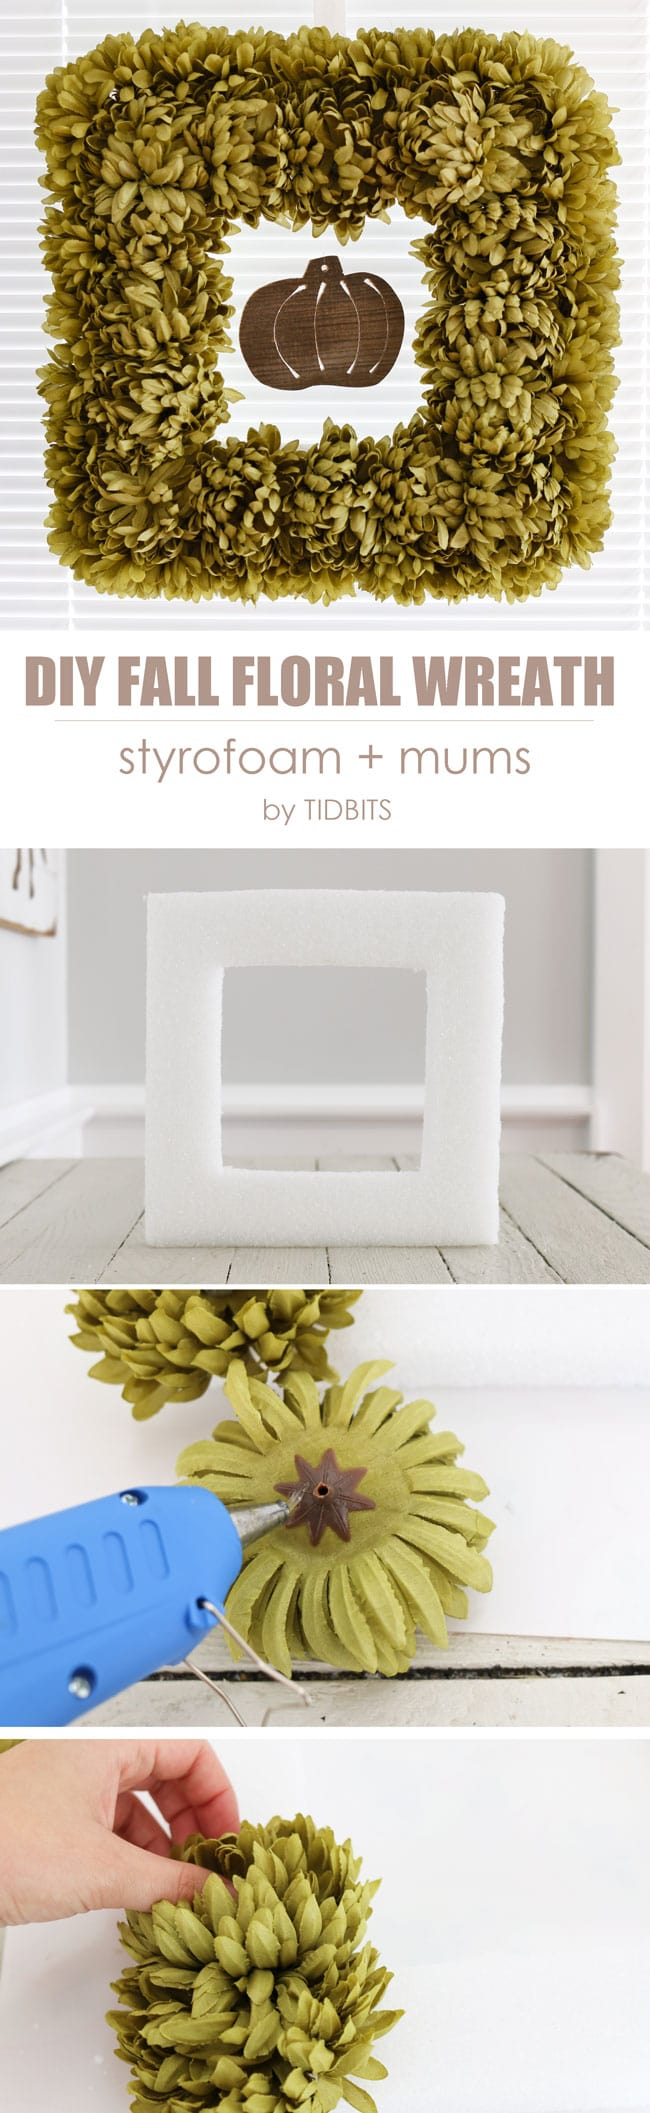 Easy DIY Fall floral wreath made from sytrofoam and artificial mums.